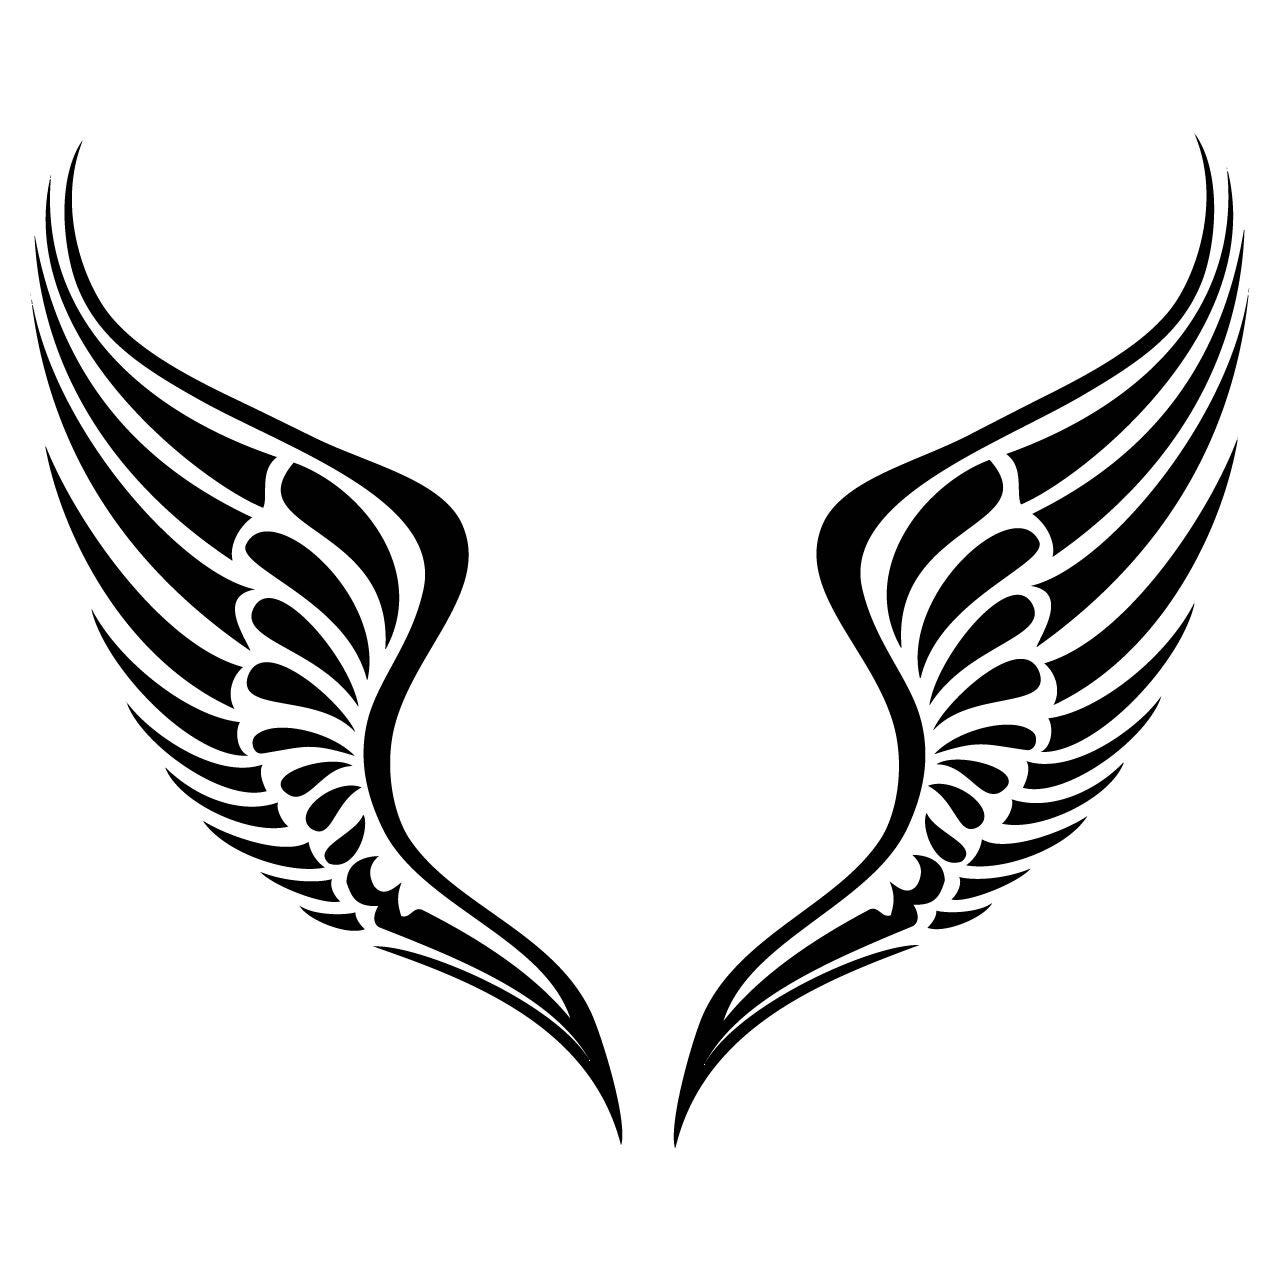 Angel wings with tribal design clipart vector royalty free stock Angel Halo Drawings - ClipArt Best - ClipArt Best | Gourd designs ... vector royalty free stock